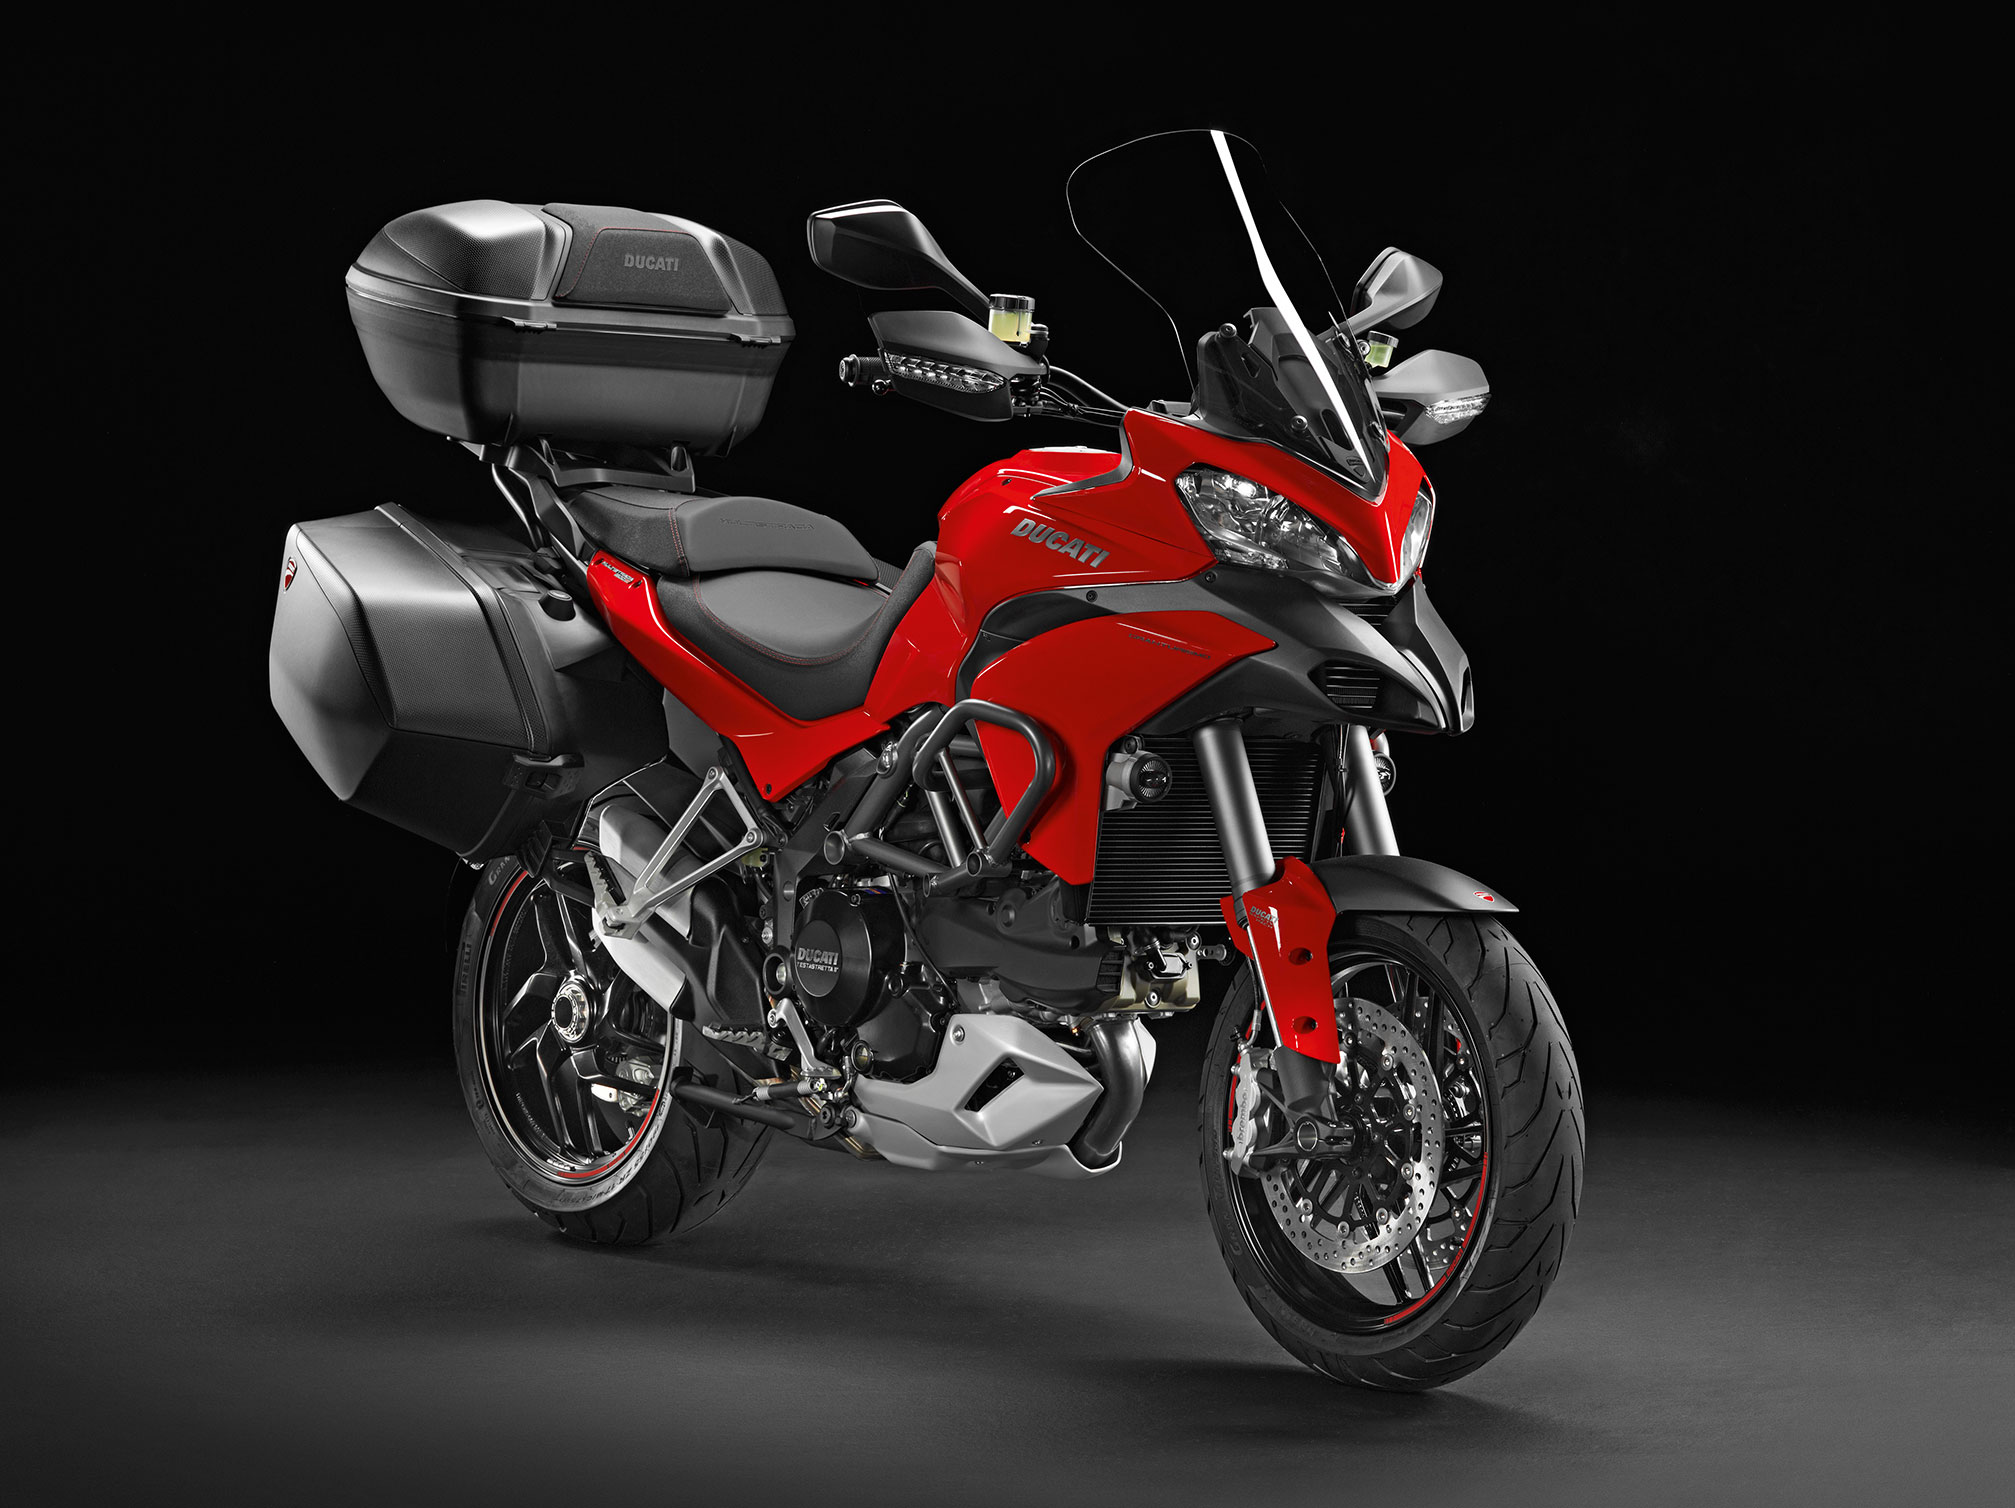 2015 ducati multistrada 1200s granturismo review. Black Bedroom Furniture Sets. Home Design Ideas